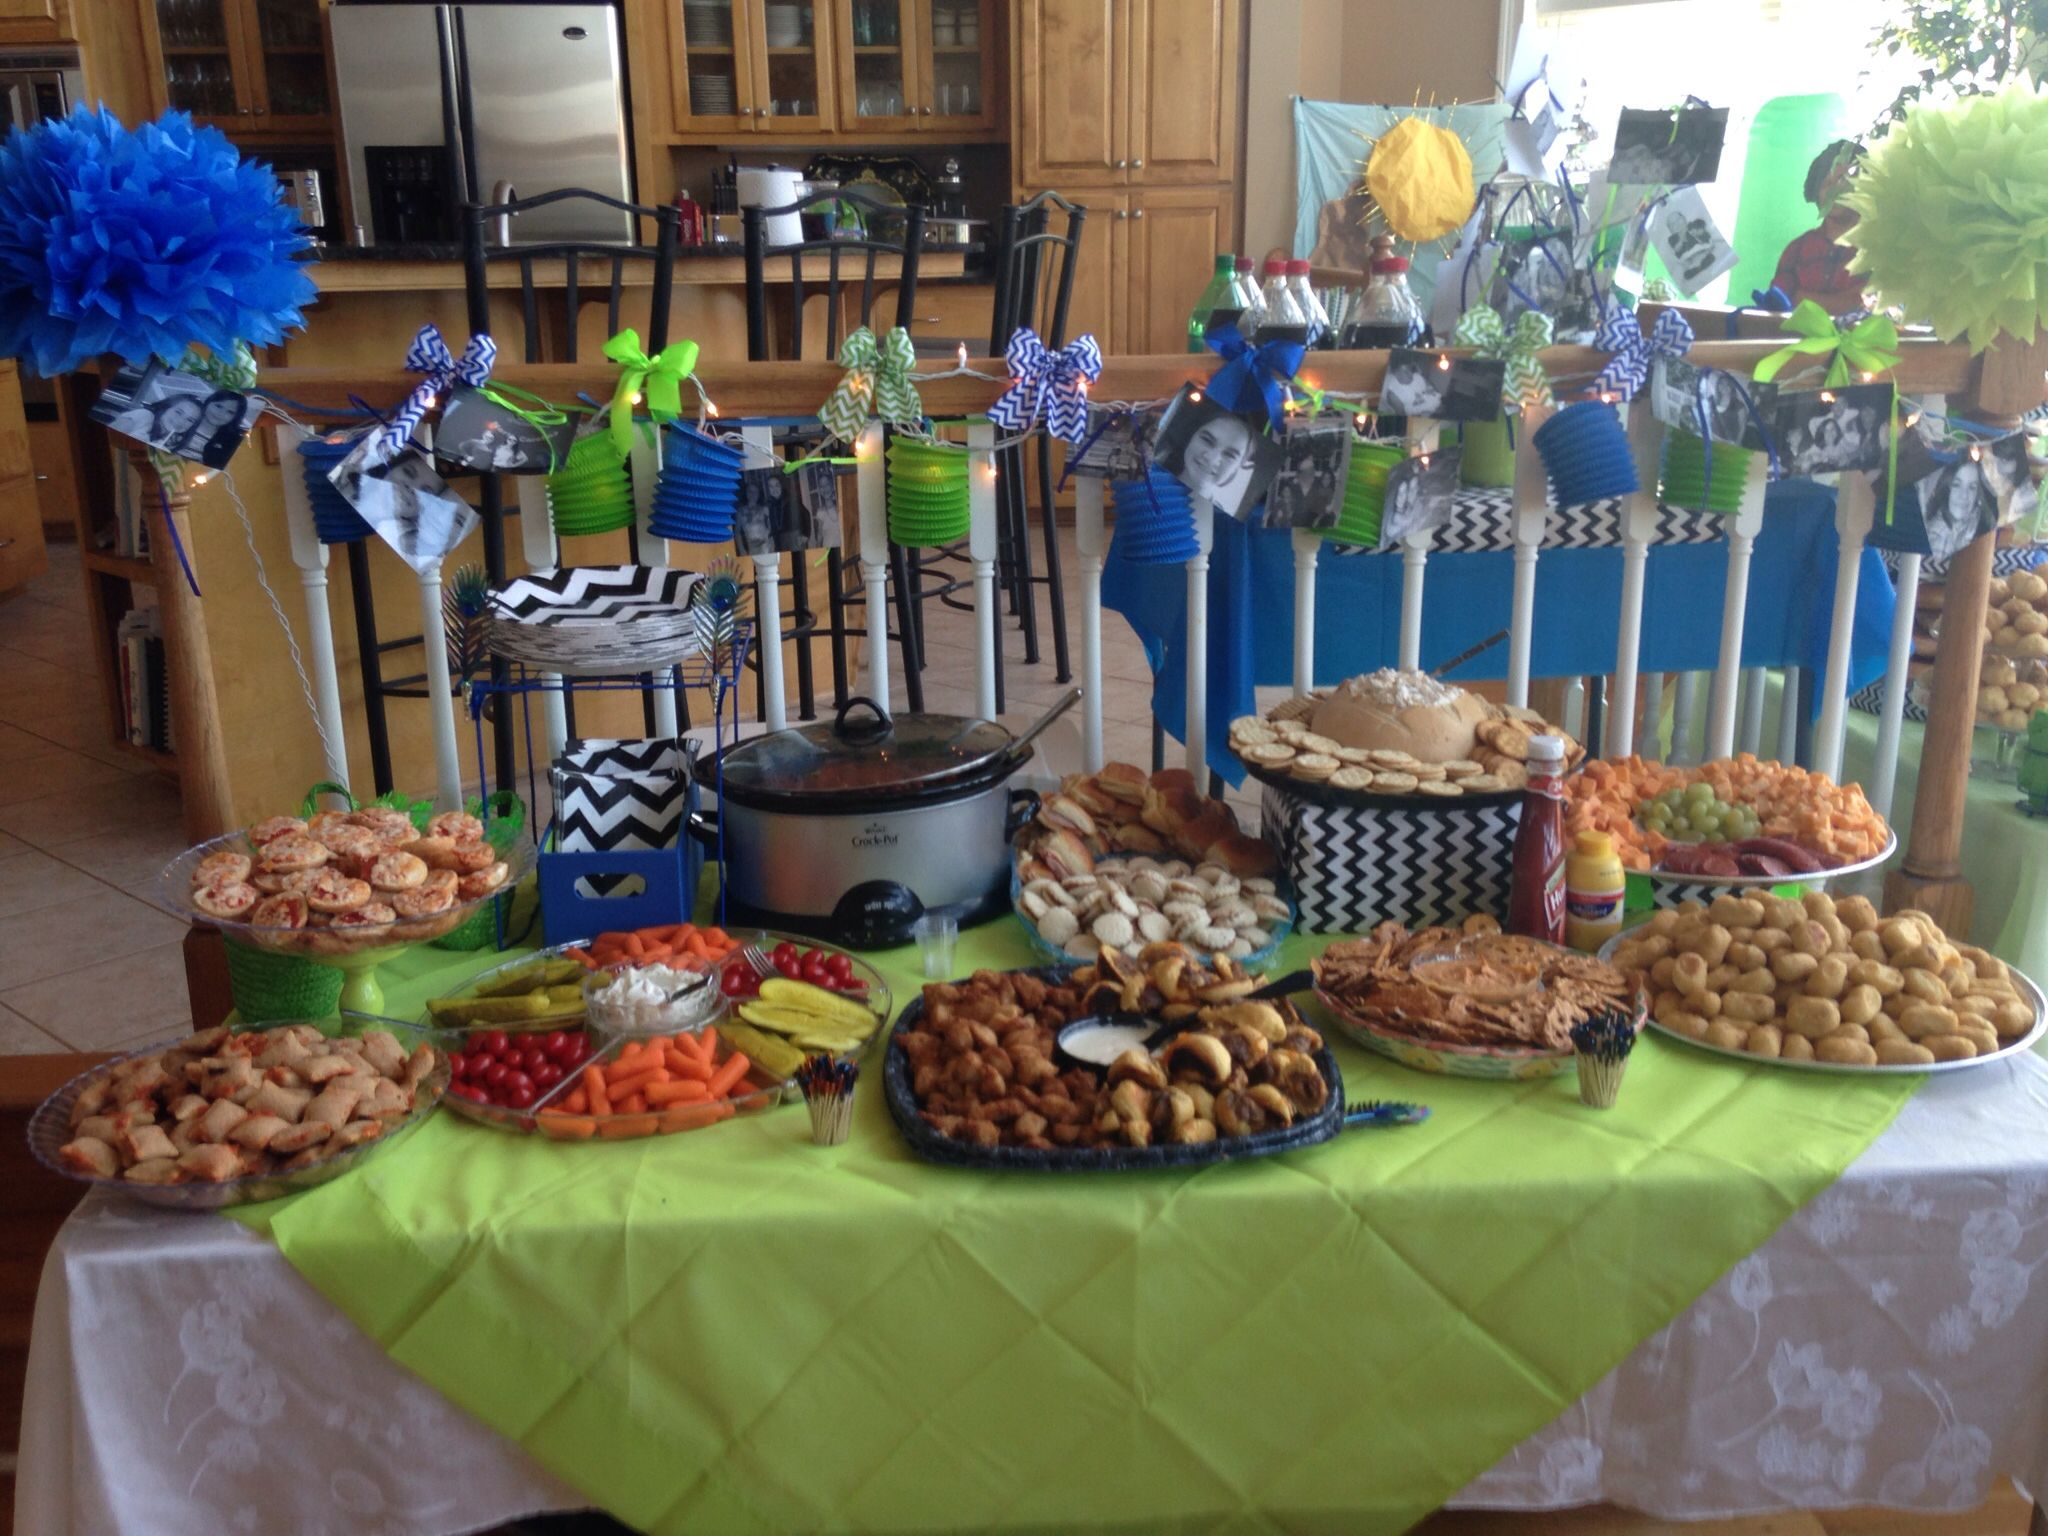 Pin By Alicia Clardy On Madison S 13th Birthday Party Birthday Party For Teens Boy Birthday Parties Fun Birthday Party